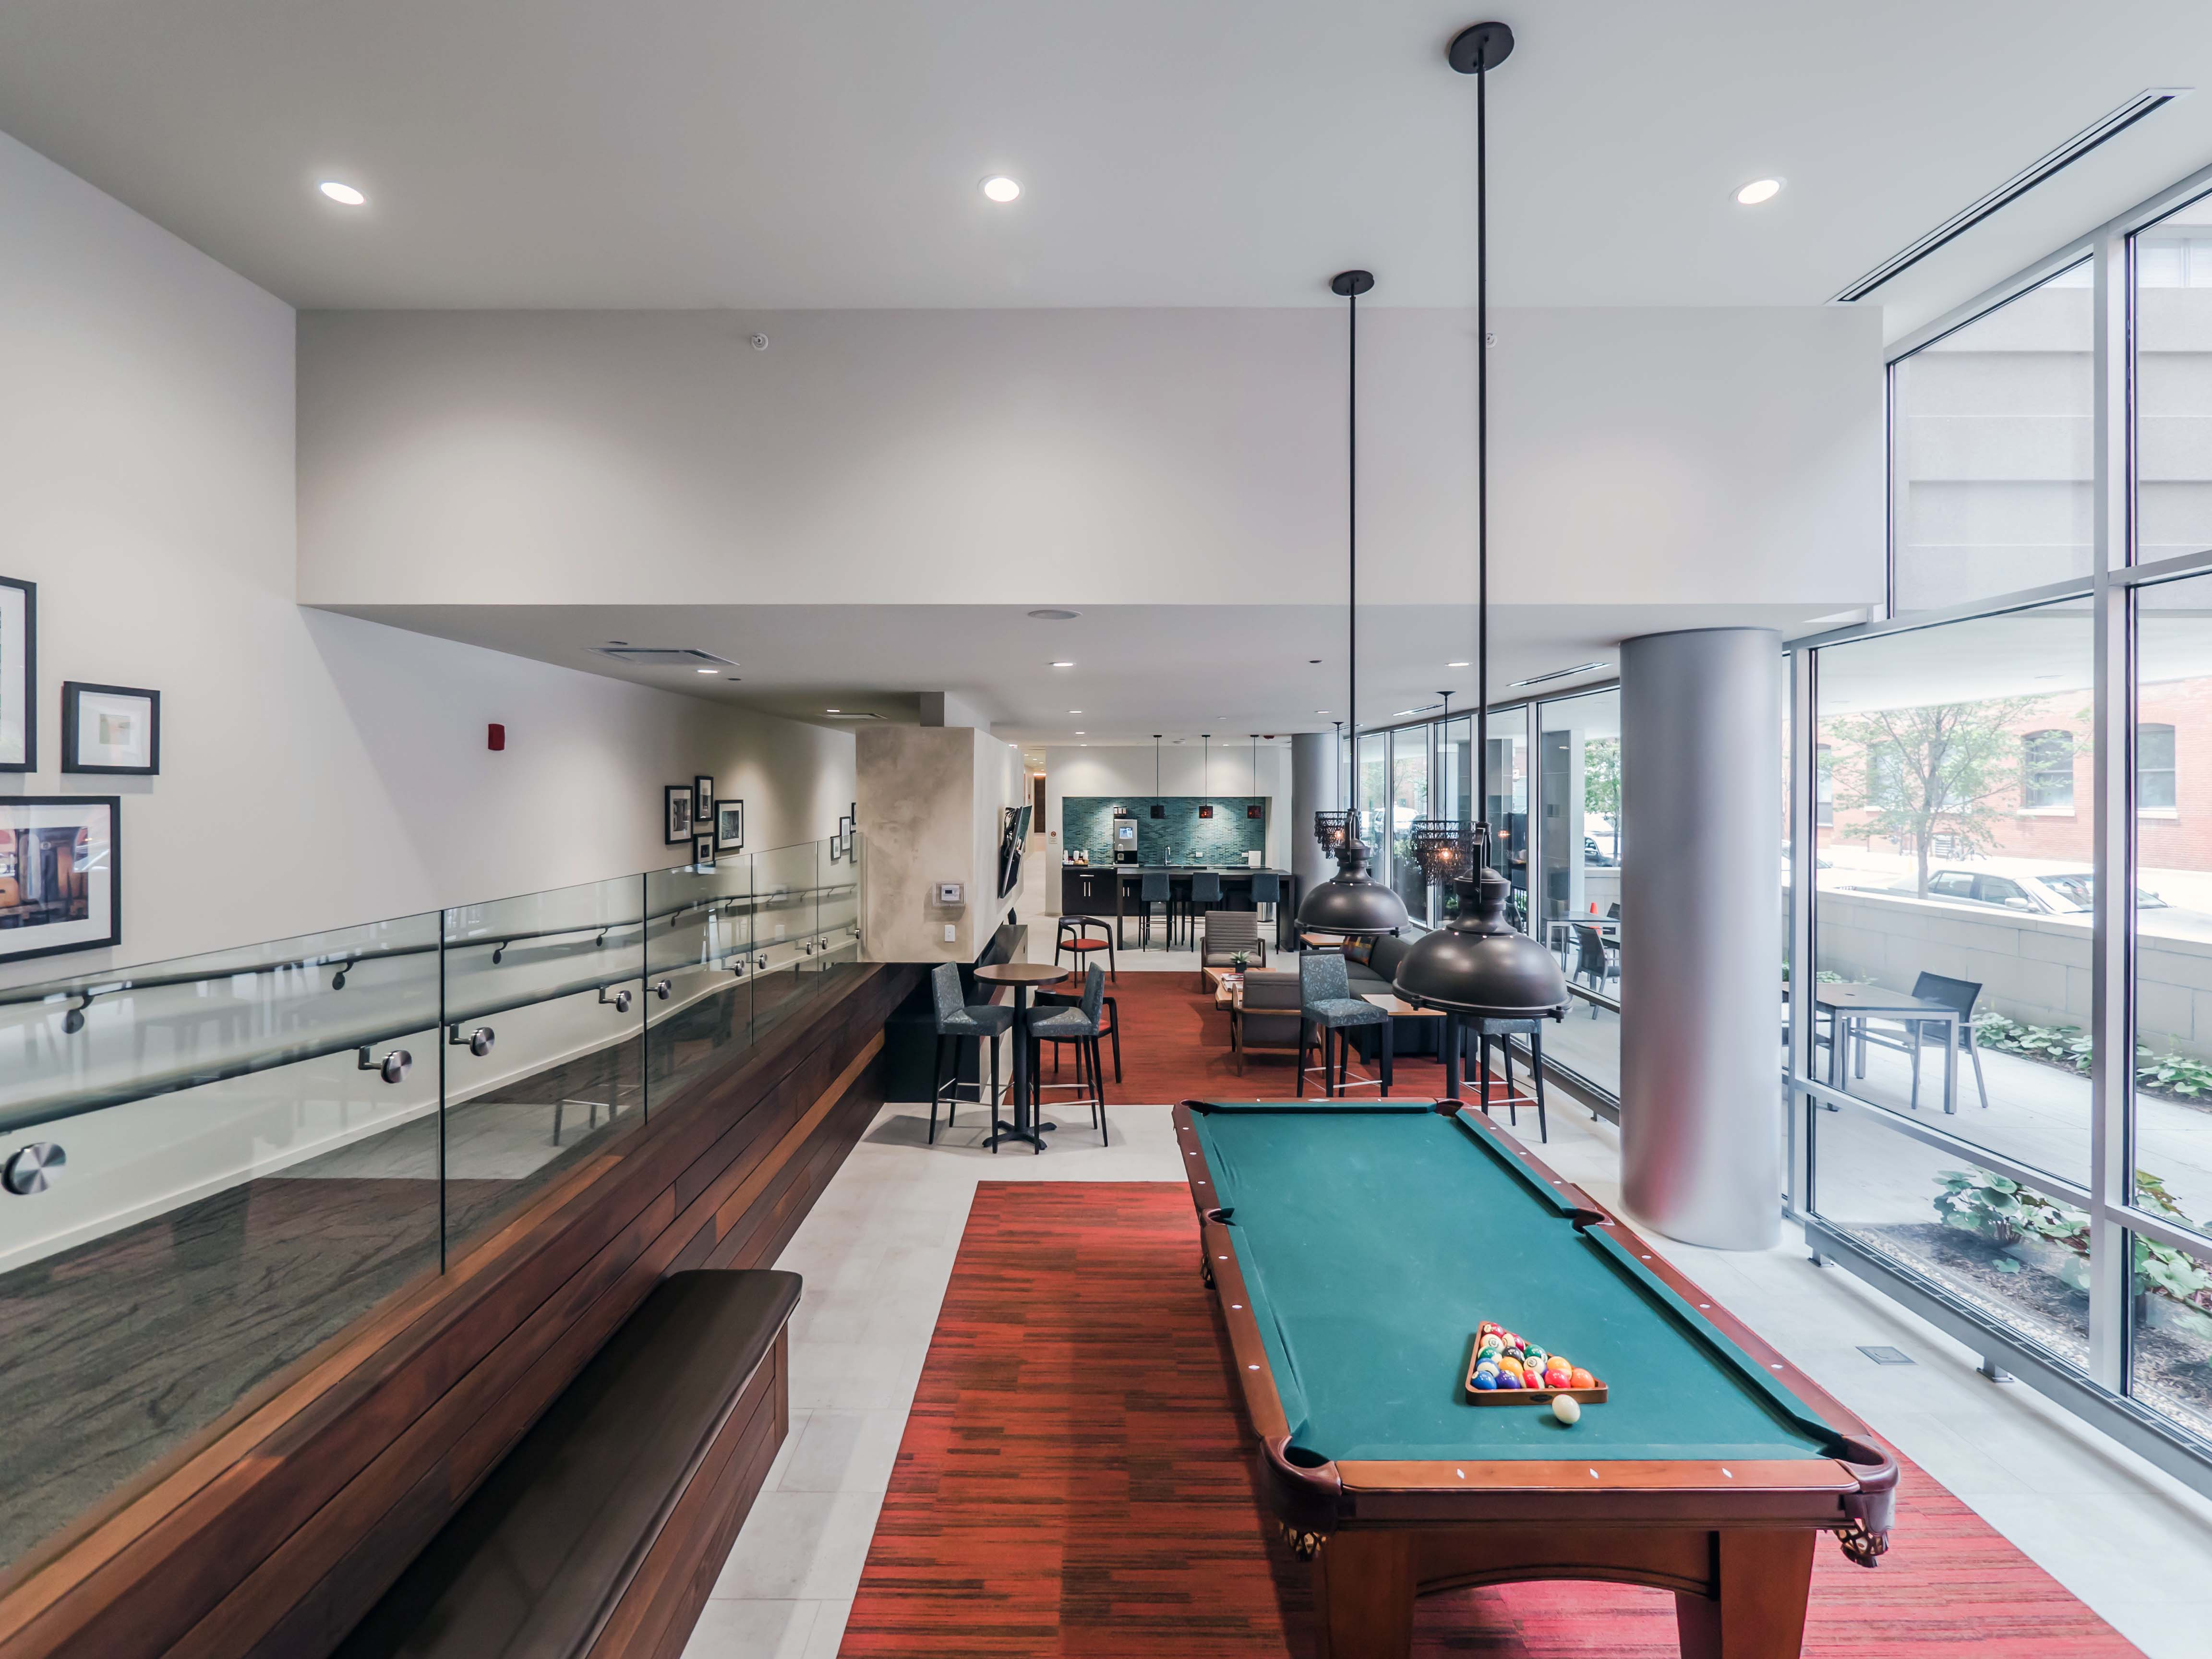 A few choice west loop apartments available at circa 922 for Affordable rooftop pools nyc